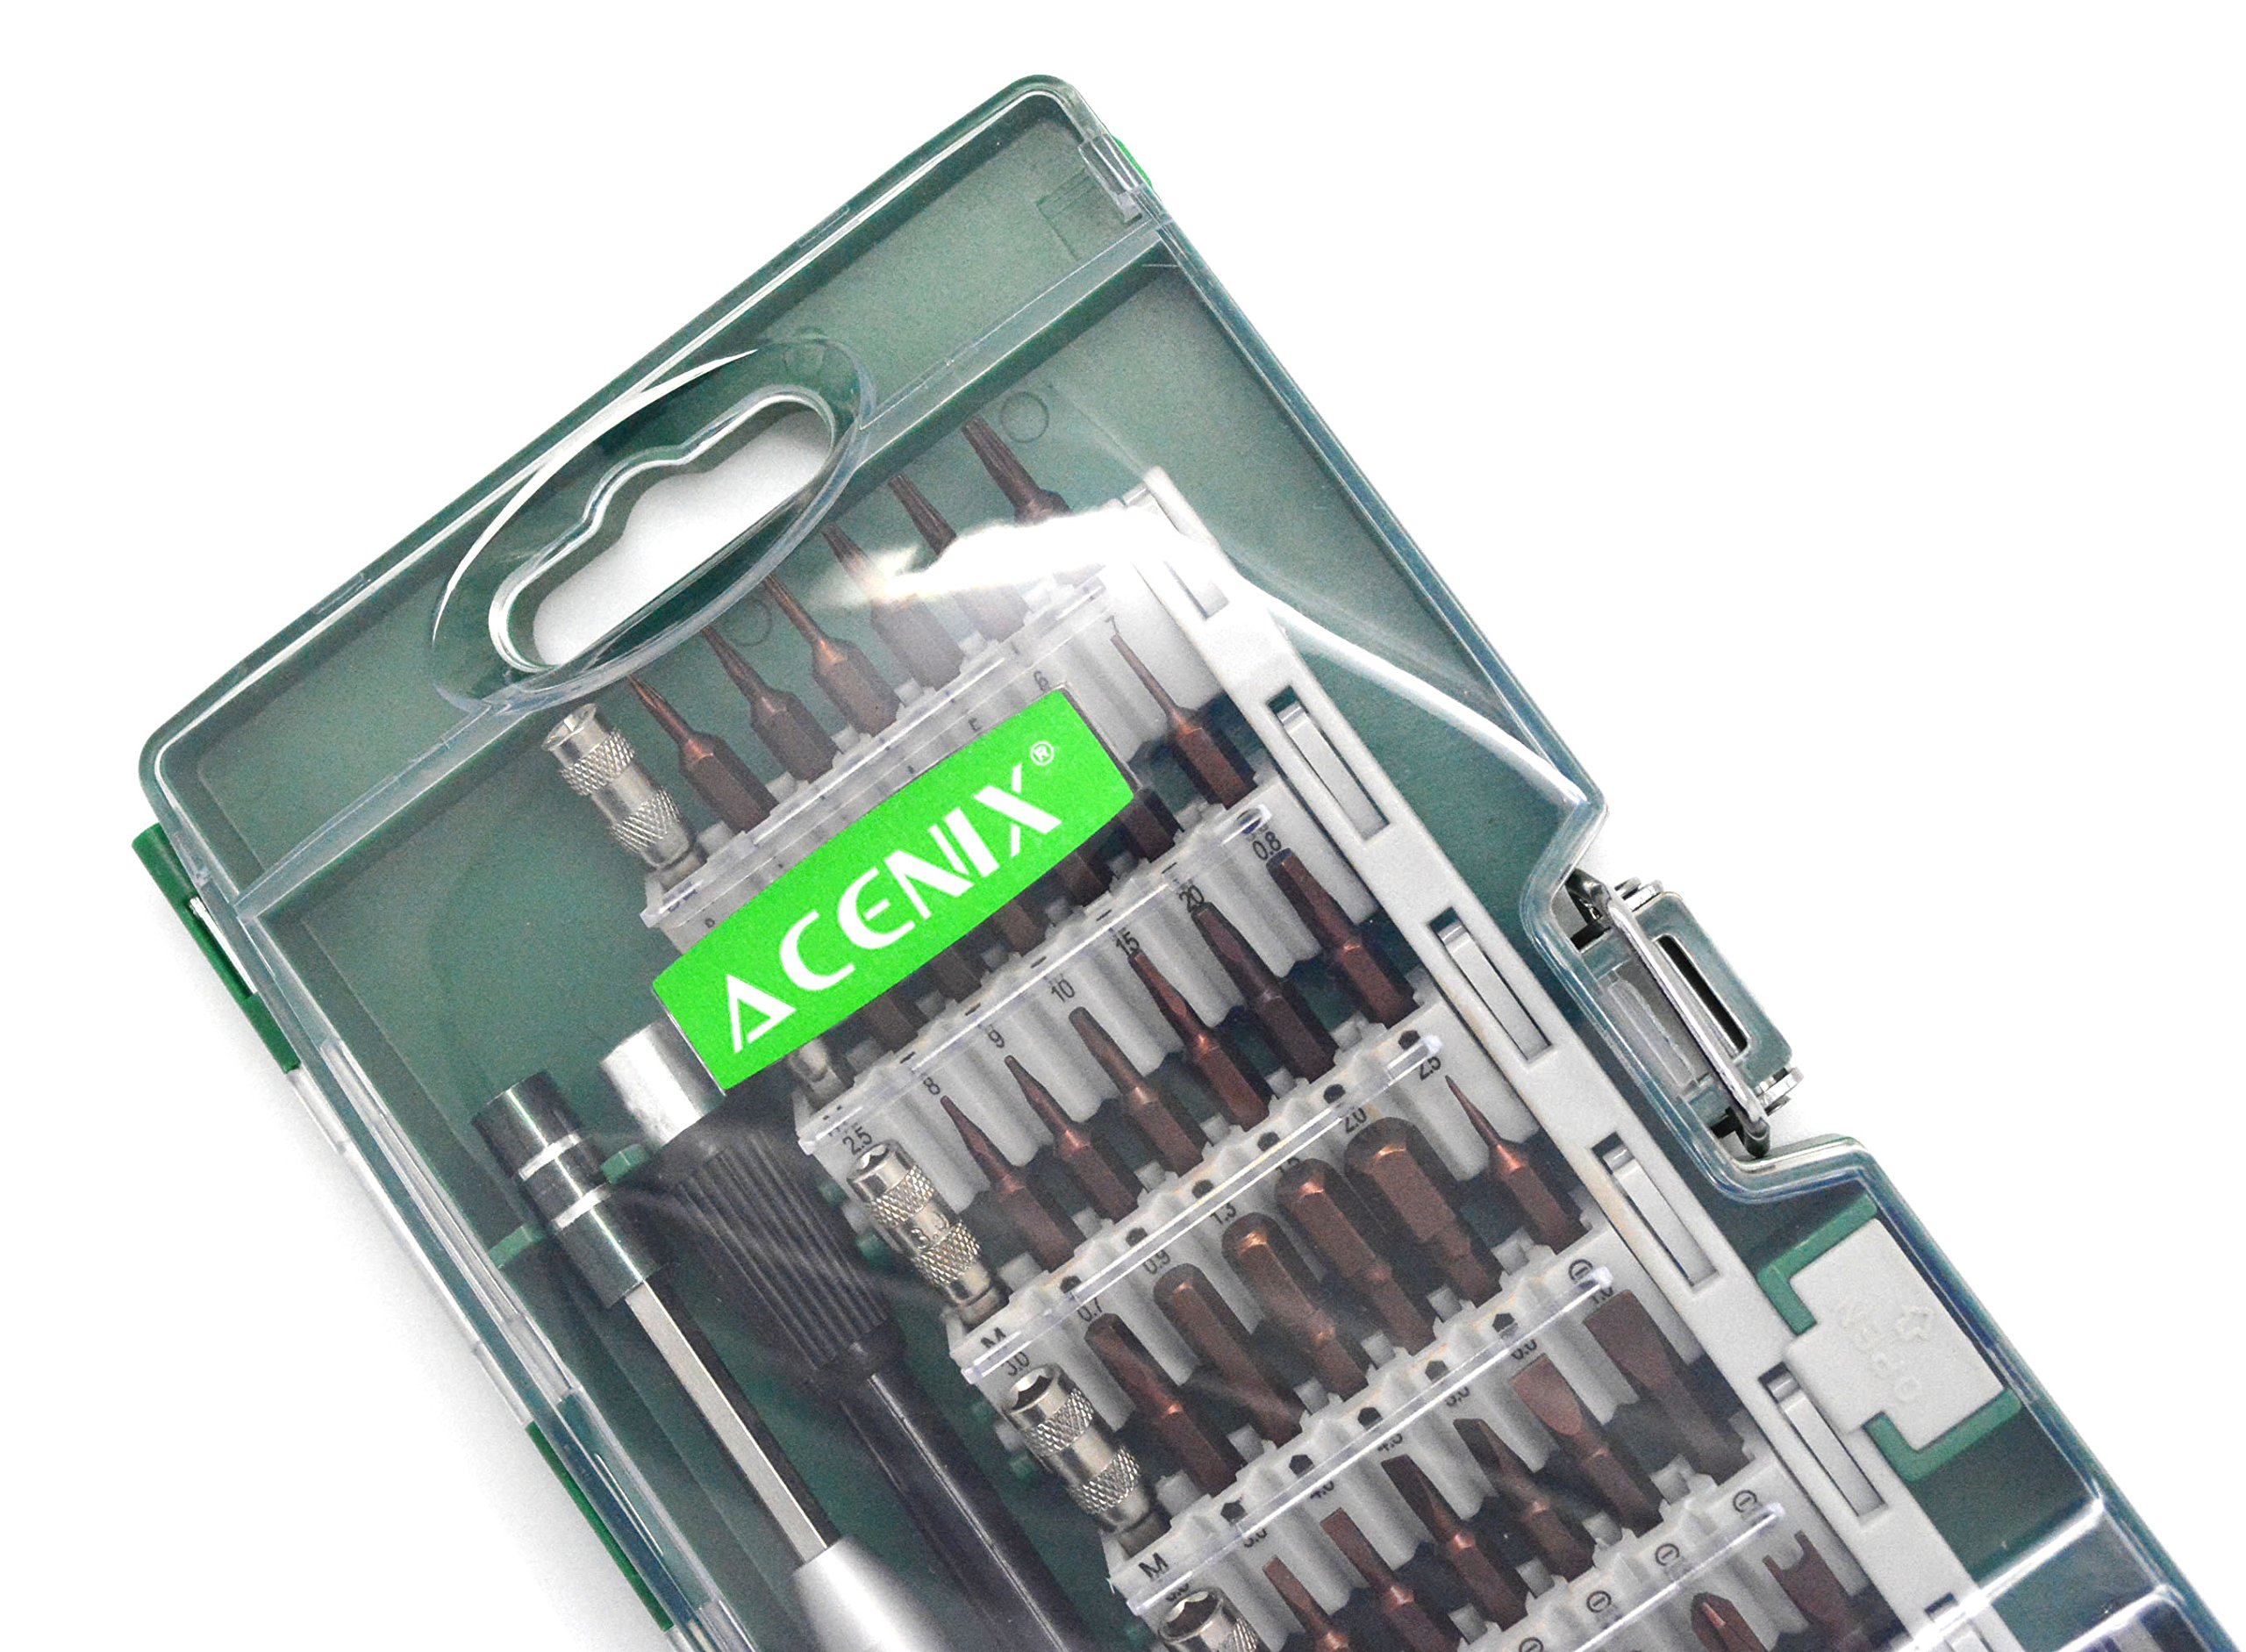 ACENIX New 60 Pcs Professional Tools Set Screwdriver Set Repair Tool Kit Fix iPhone Samsung Laptop Smartphone MacBook Xbox Electronics Torx Diver Set Ipad Tablet Cameras Electronic Toys by ACENIX® (Image #4)